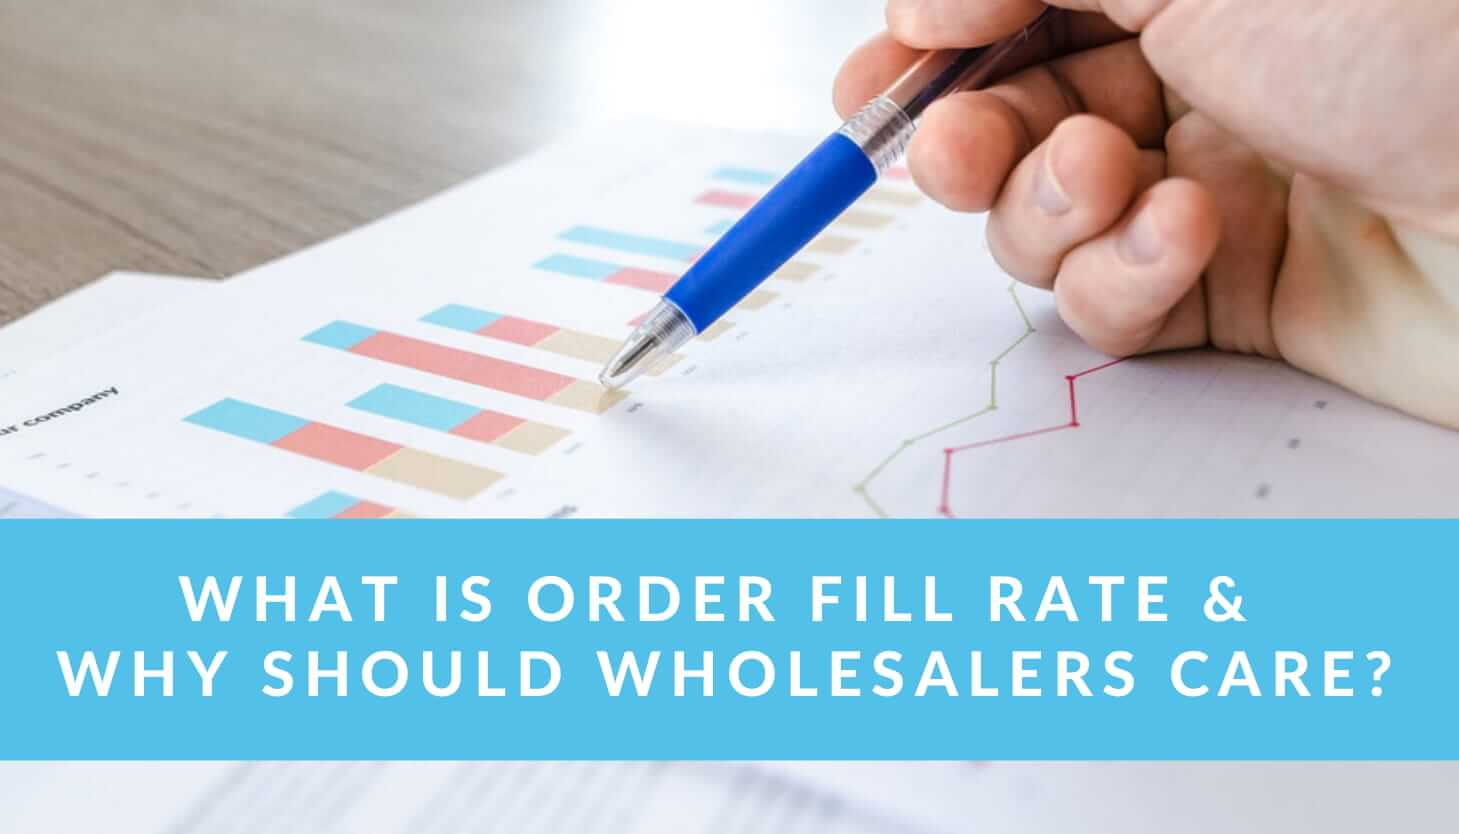 Order fill rate